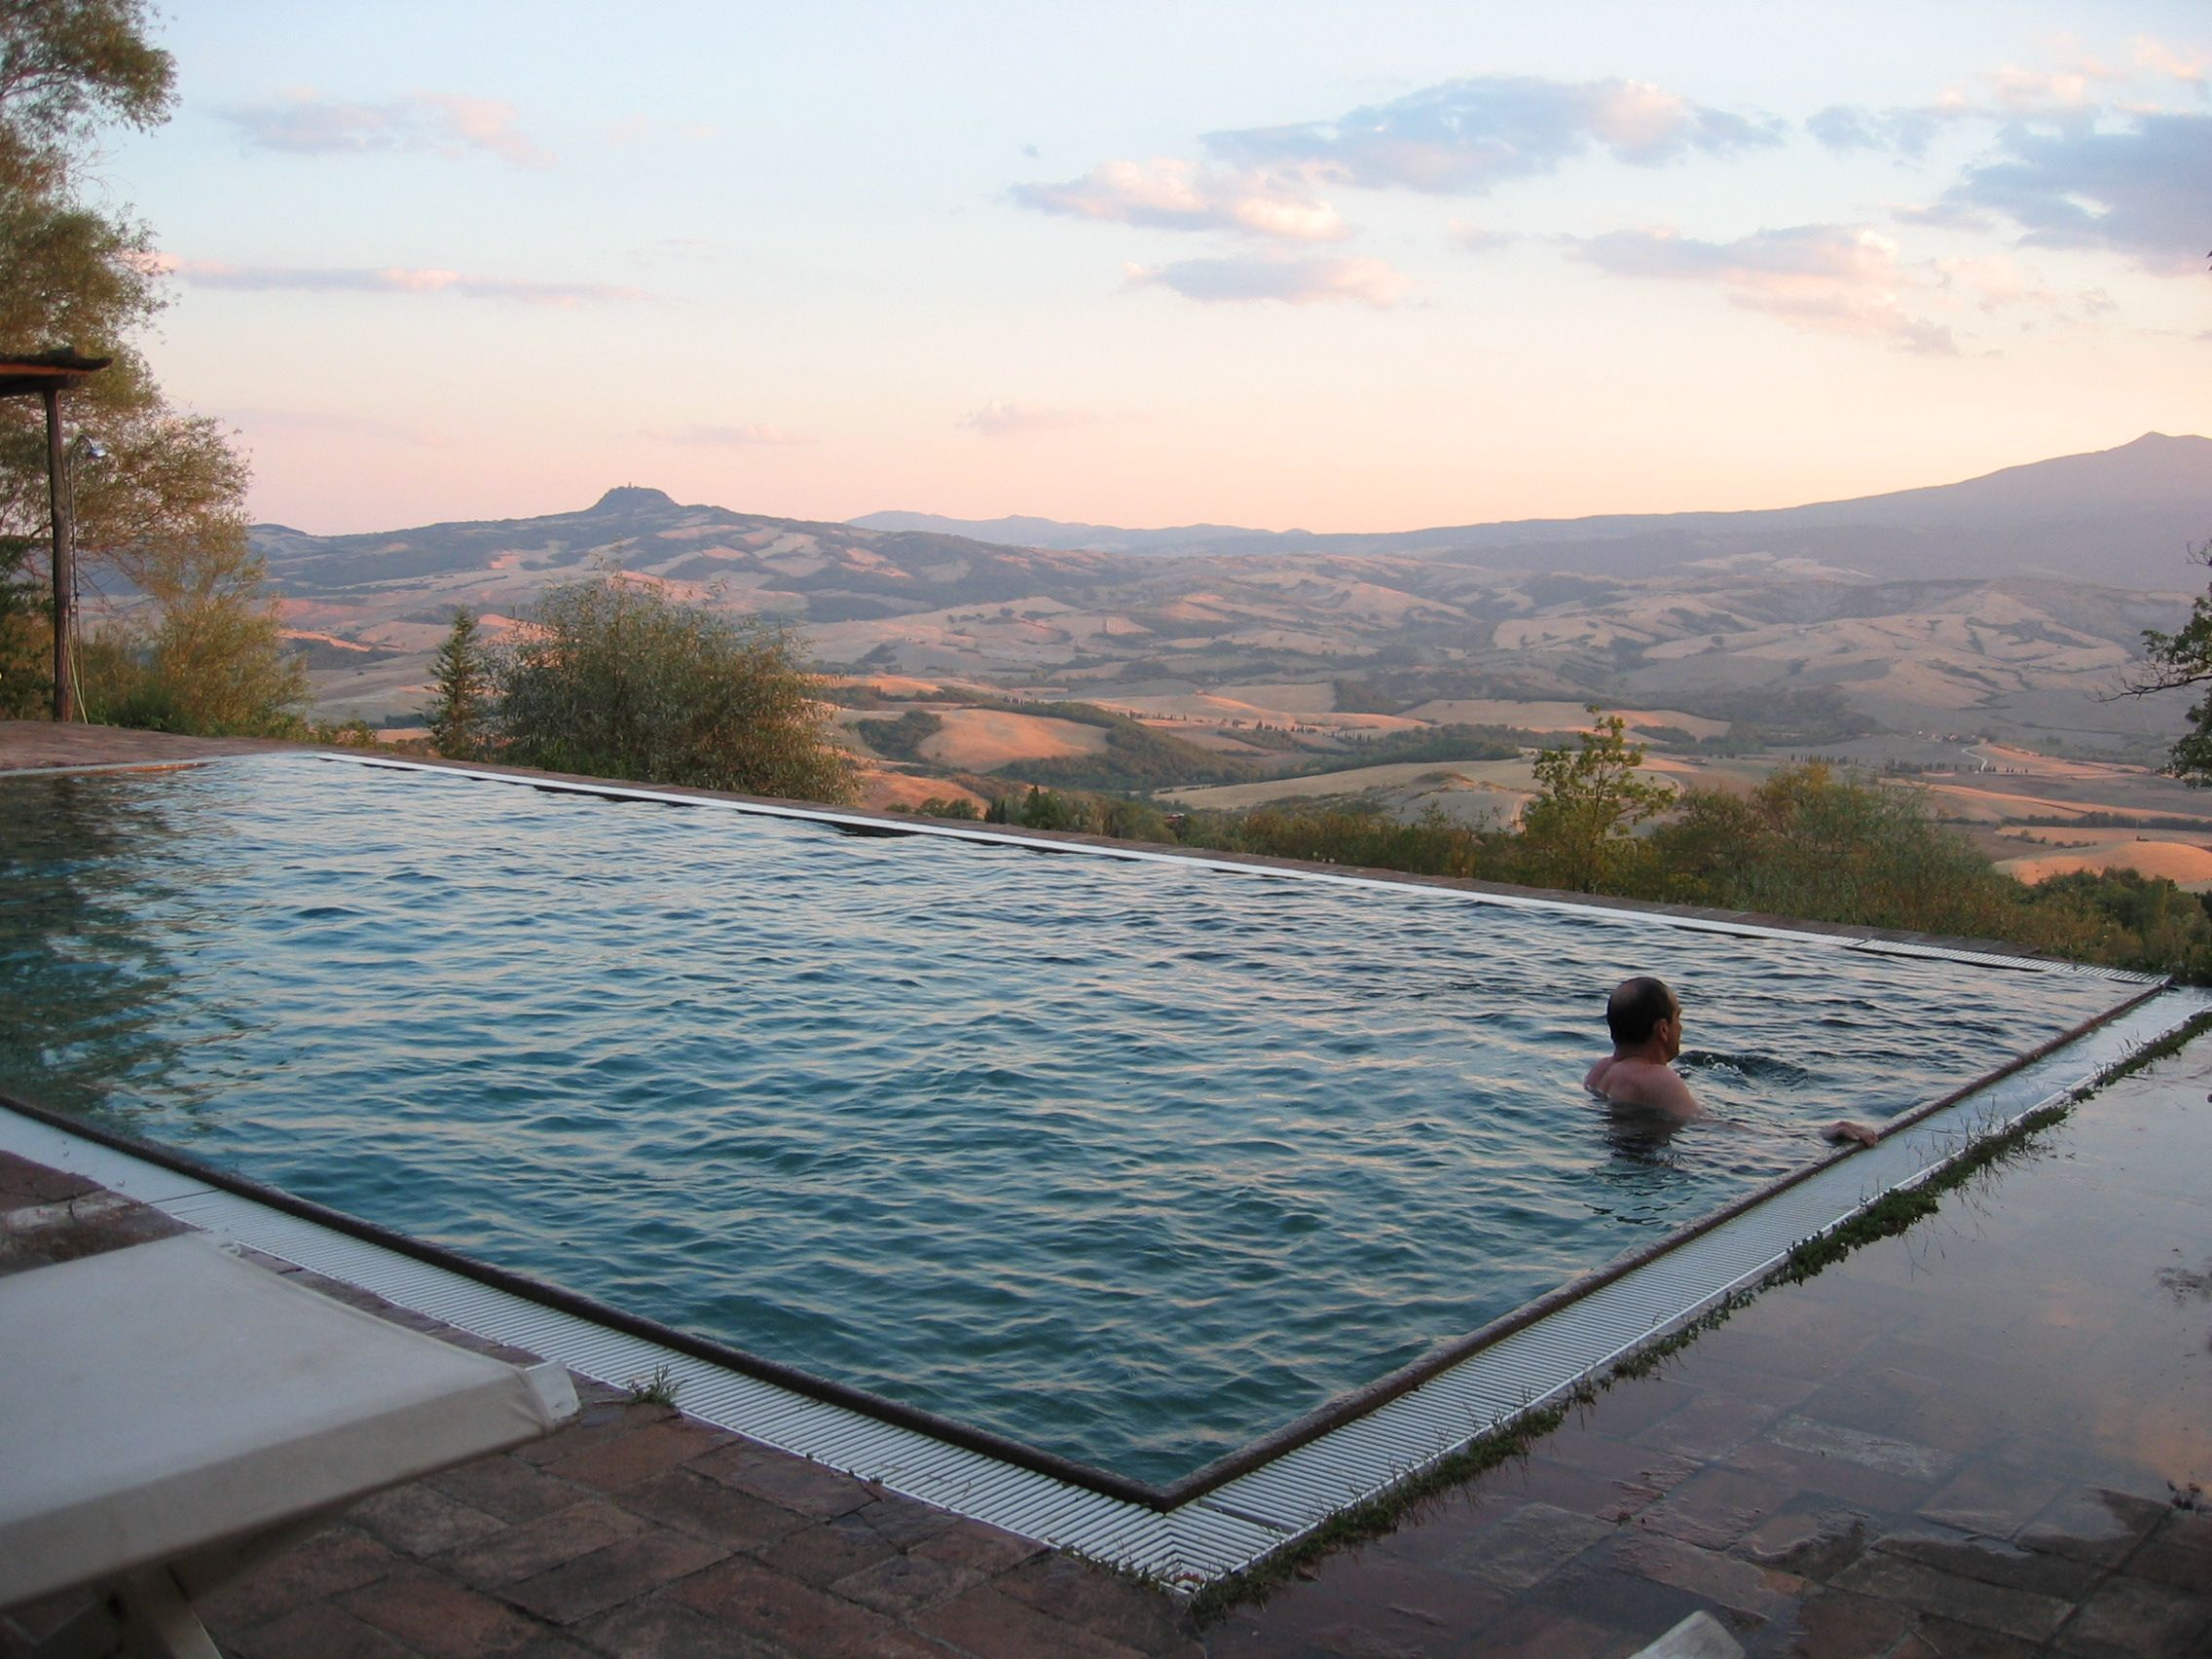 Best Hotel In Switzerland With Infinity Pool Infinity Pool Tuscany Pool Cool Pools Paradise Pools